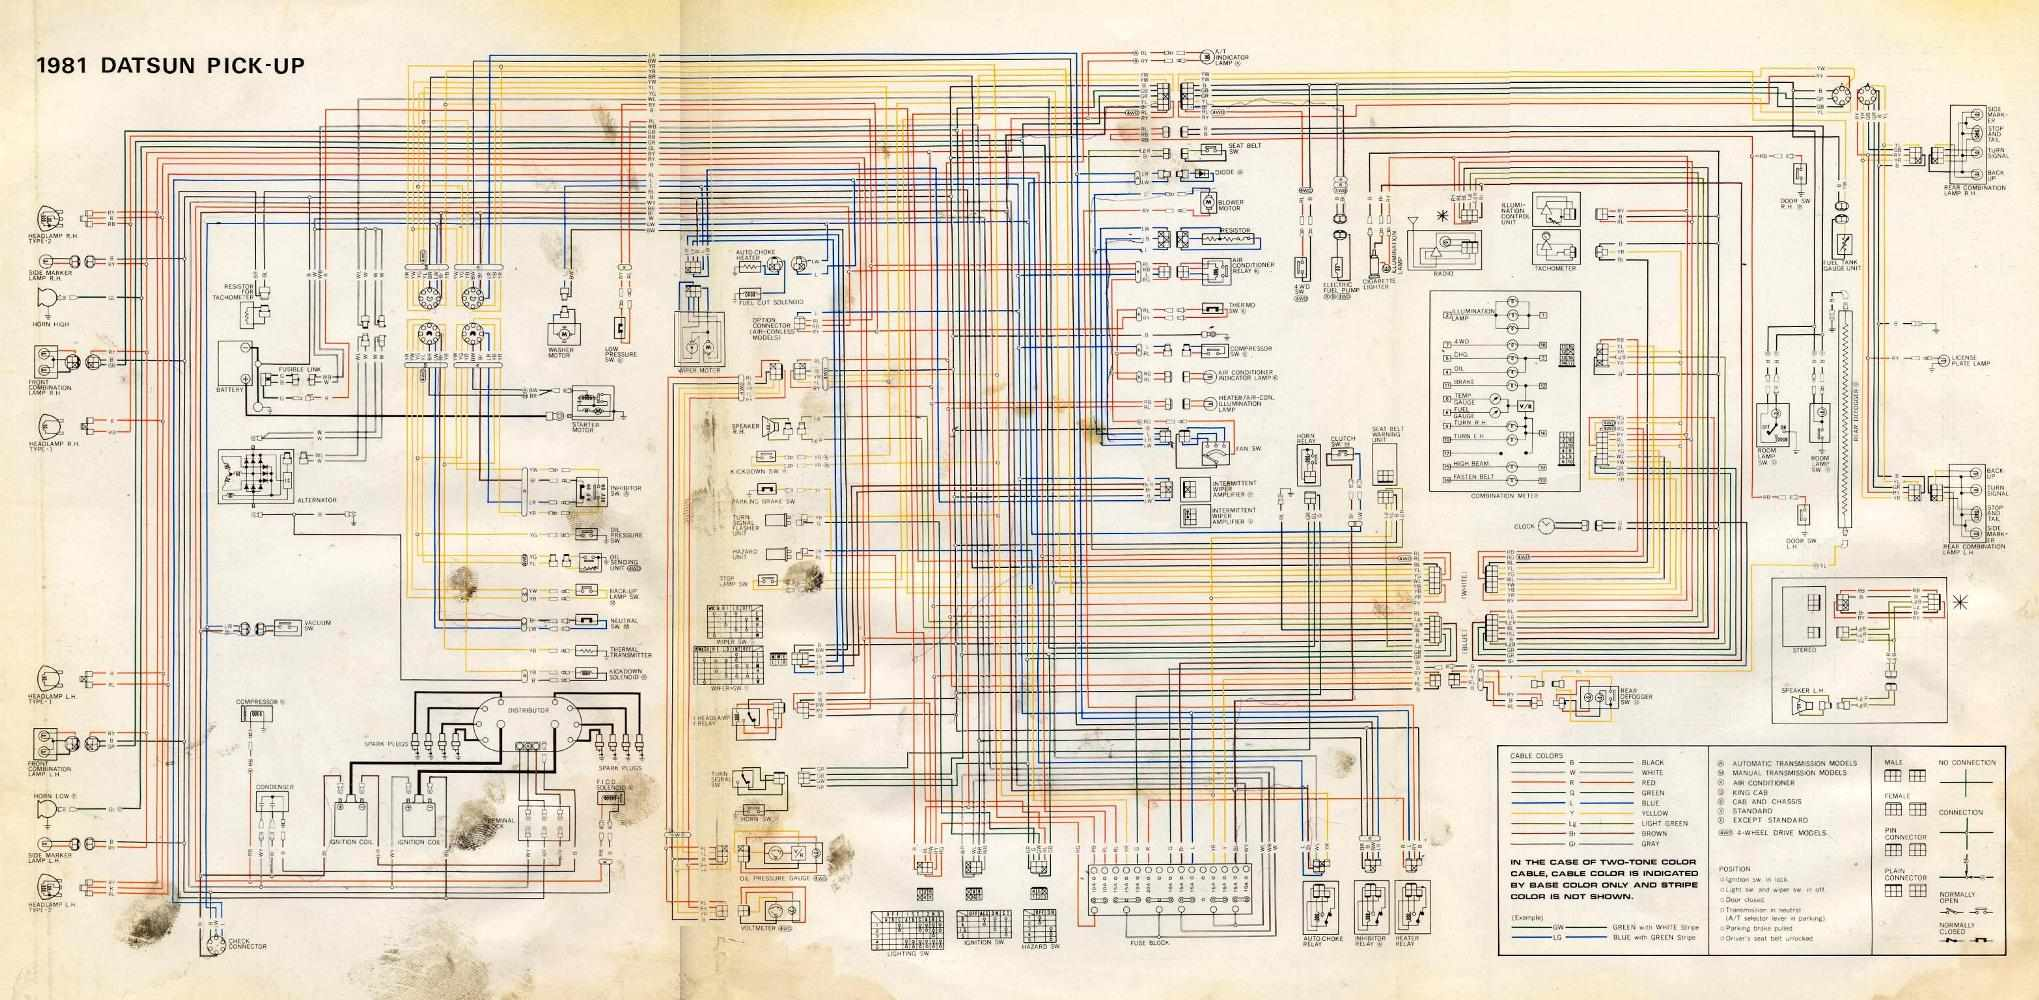 1999 Cadillac Deville Fuel Pump Wiring Diagram Trusted Schematics Mercedes W124 Car Diagrams App Auto Electrical Stereo